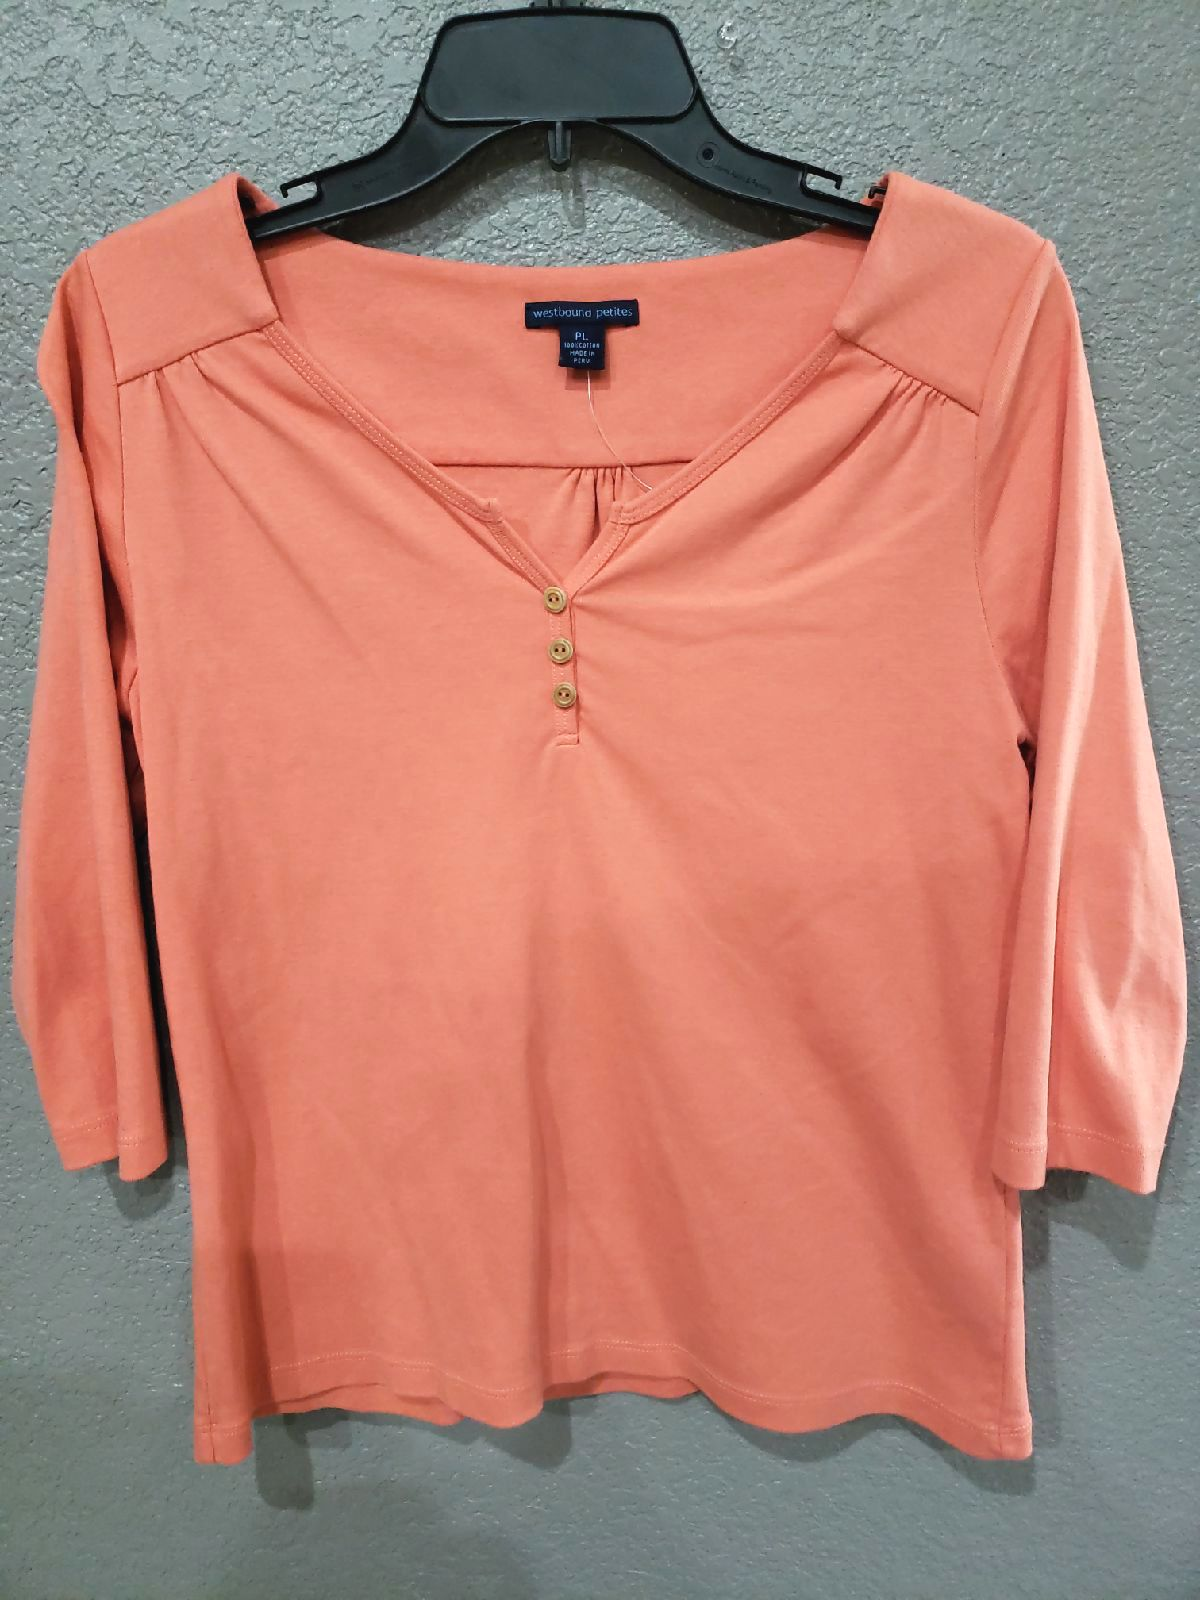 Westbound Petites Coral Knit Top Size PL